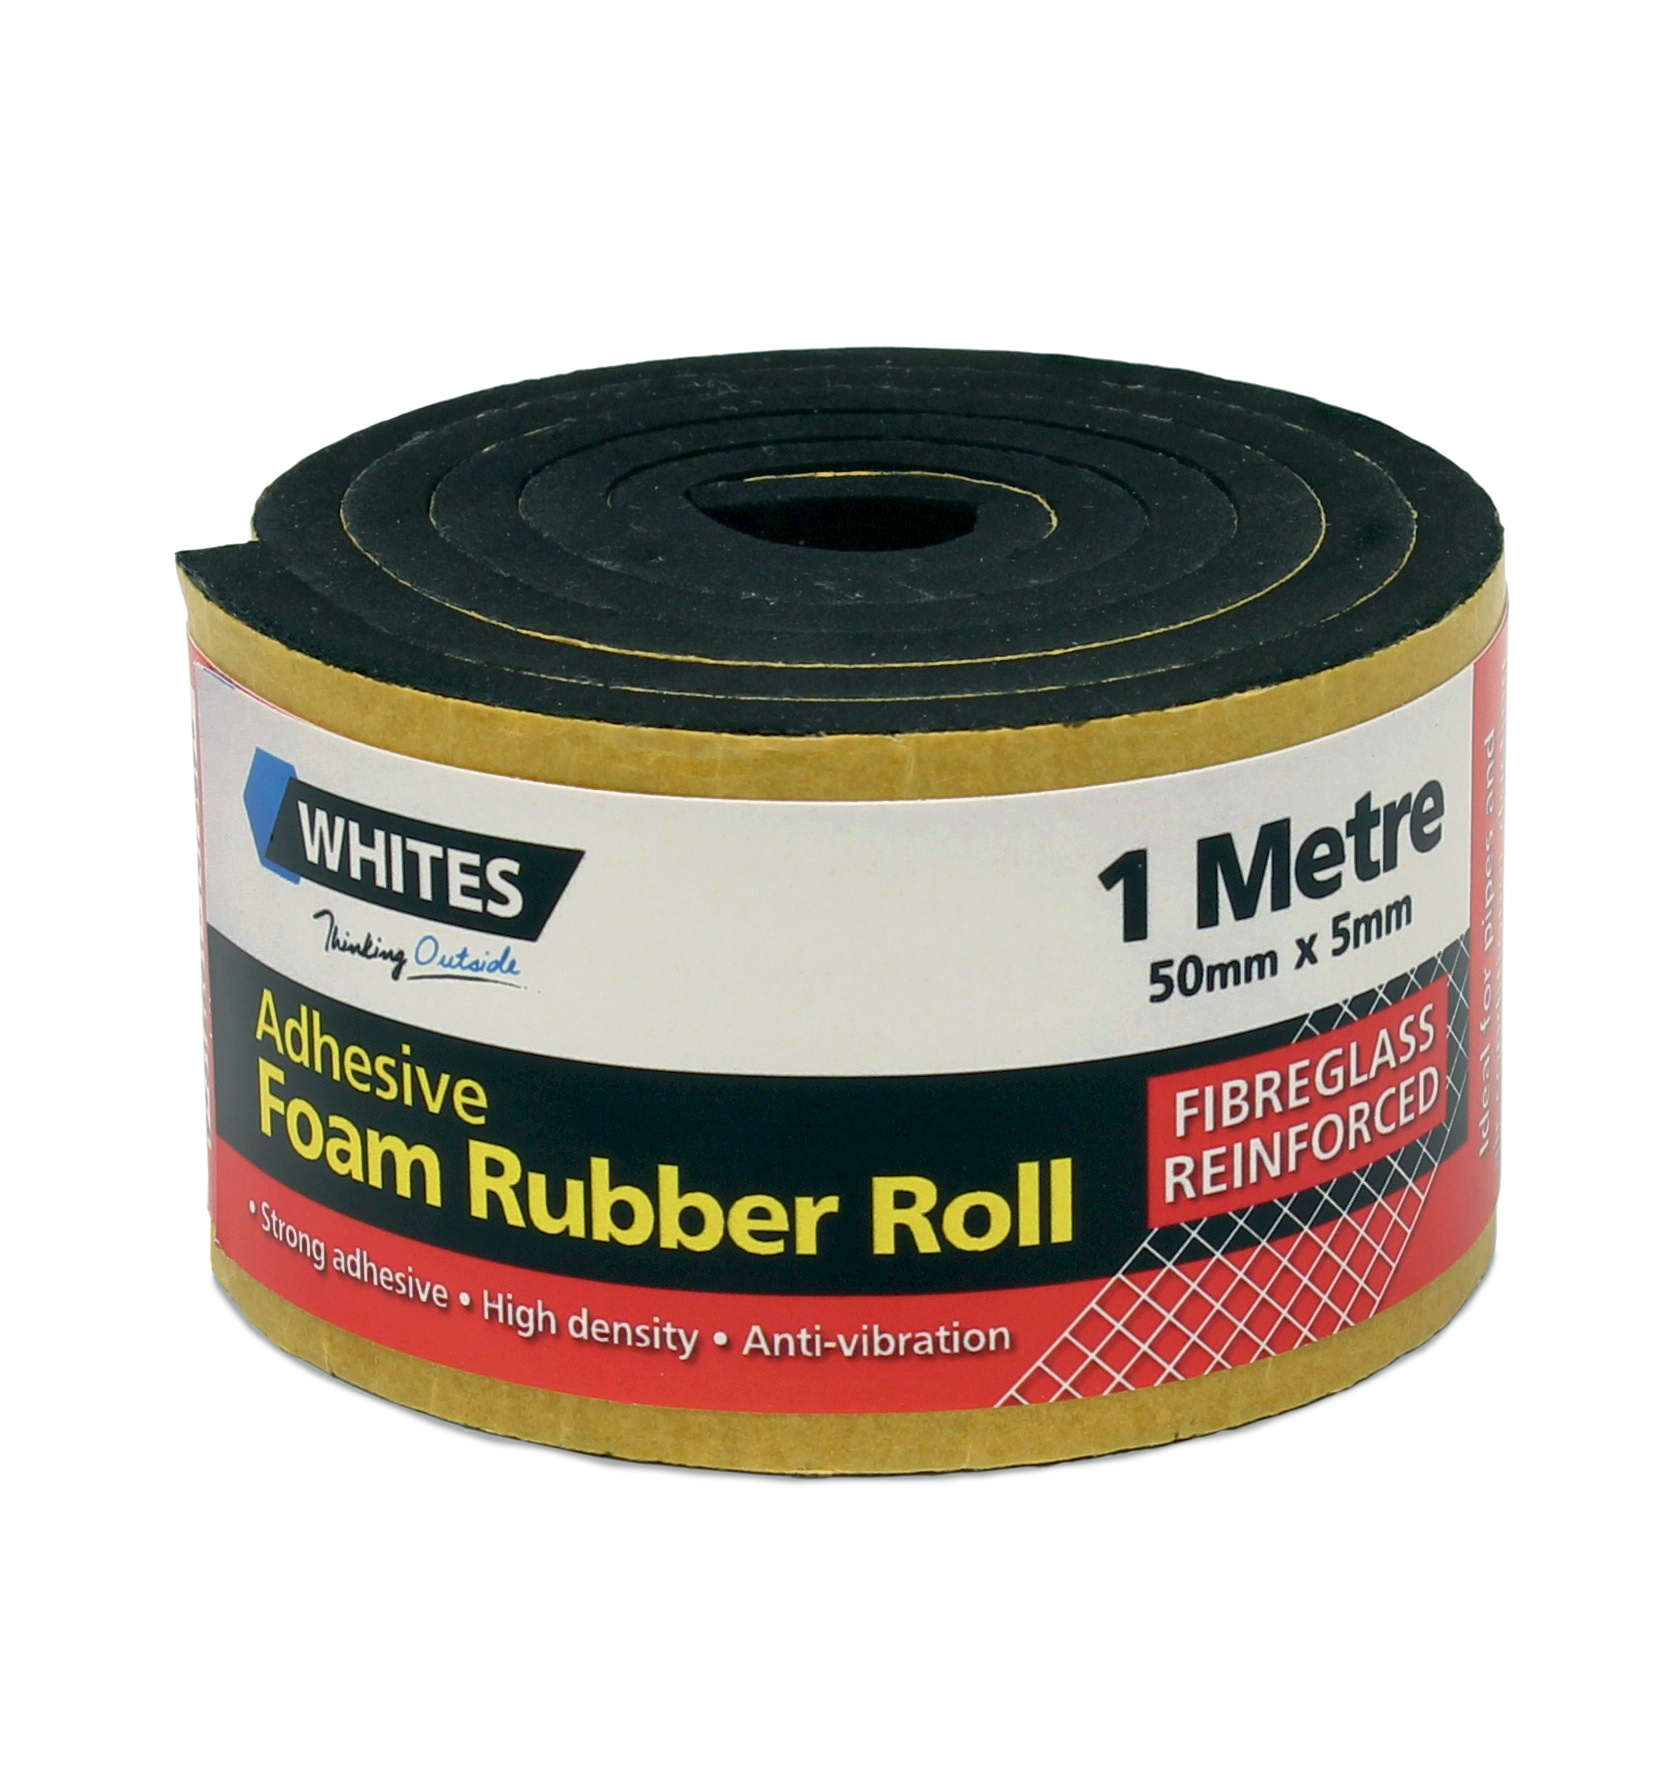 14738 Adhesive Foam Rubber Roll